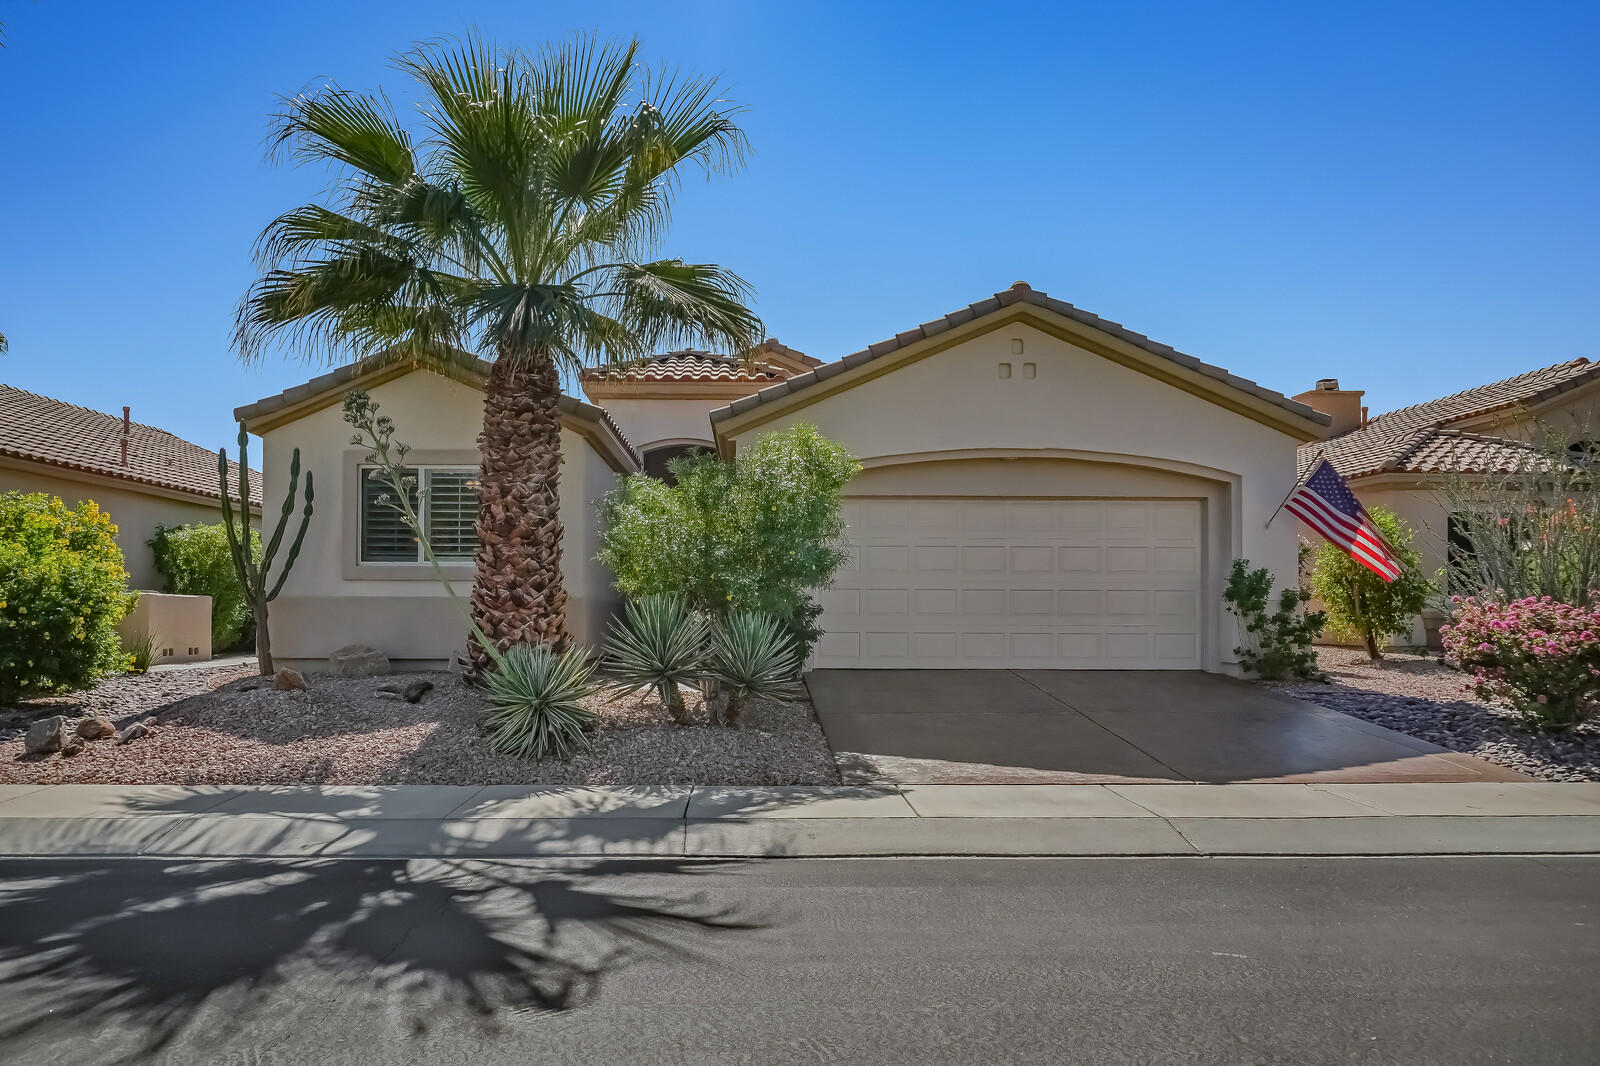 Photo of 78903 Stansbury Court, Palm Desert, CA 92211